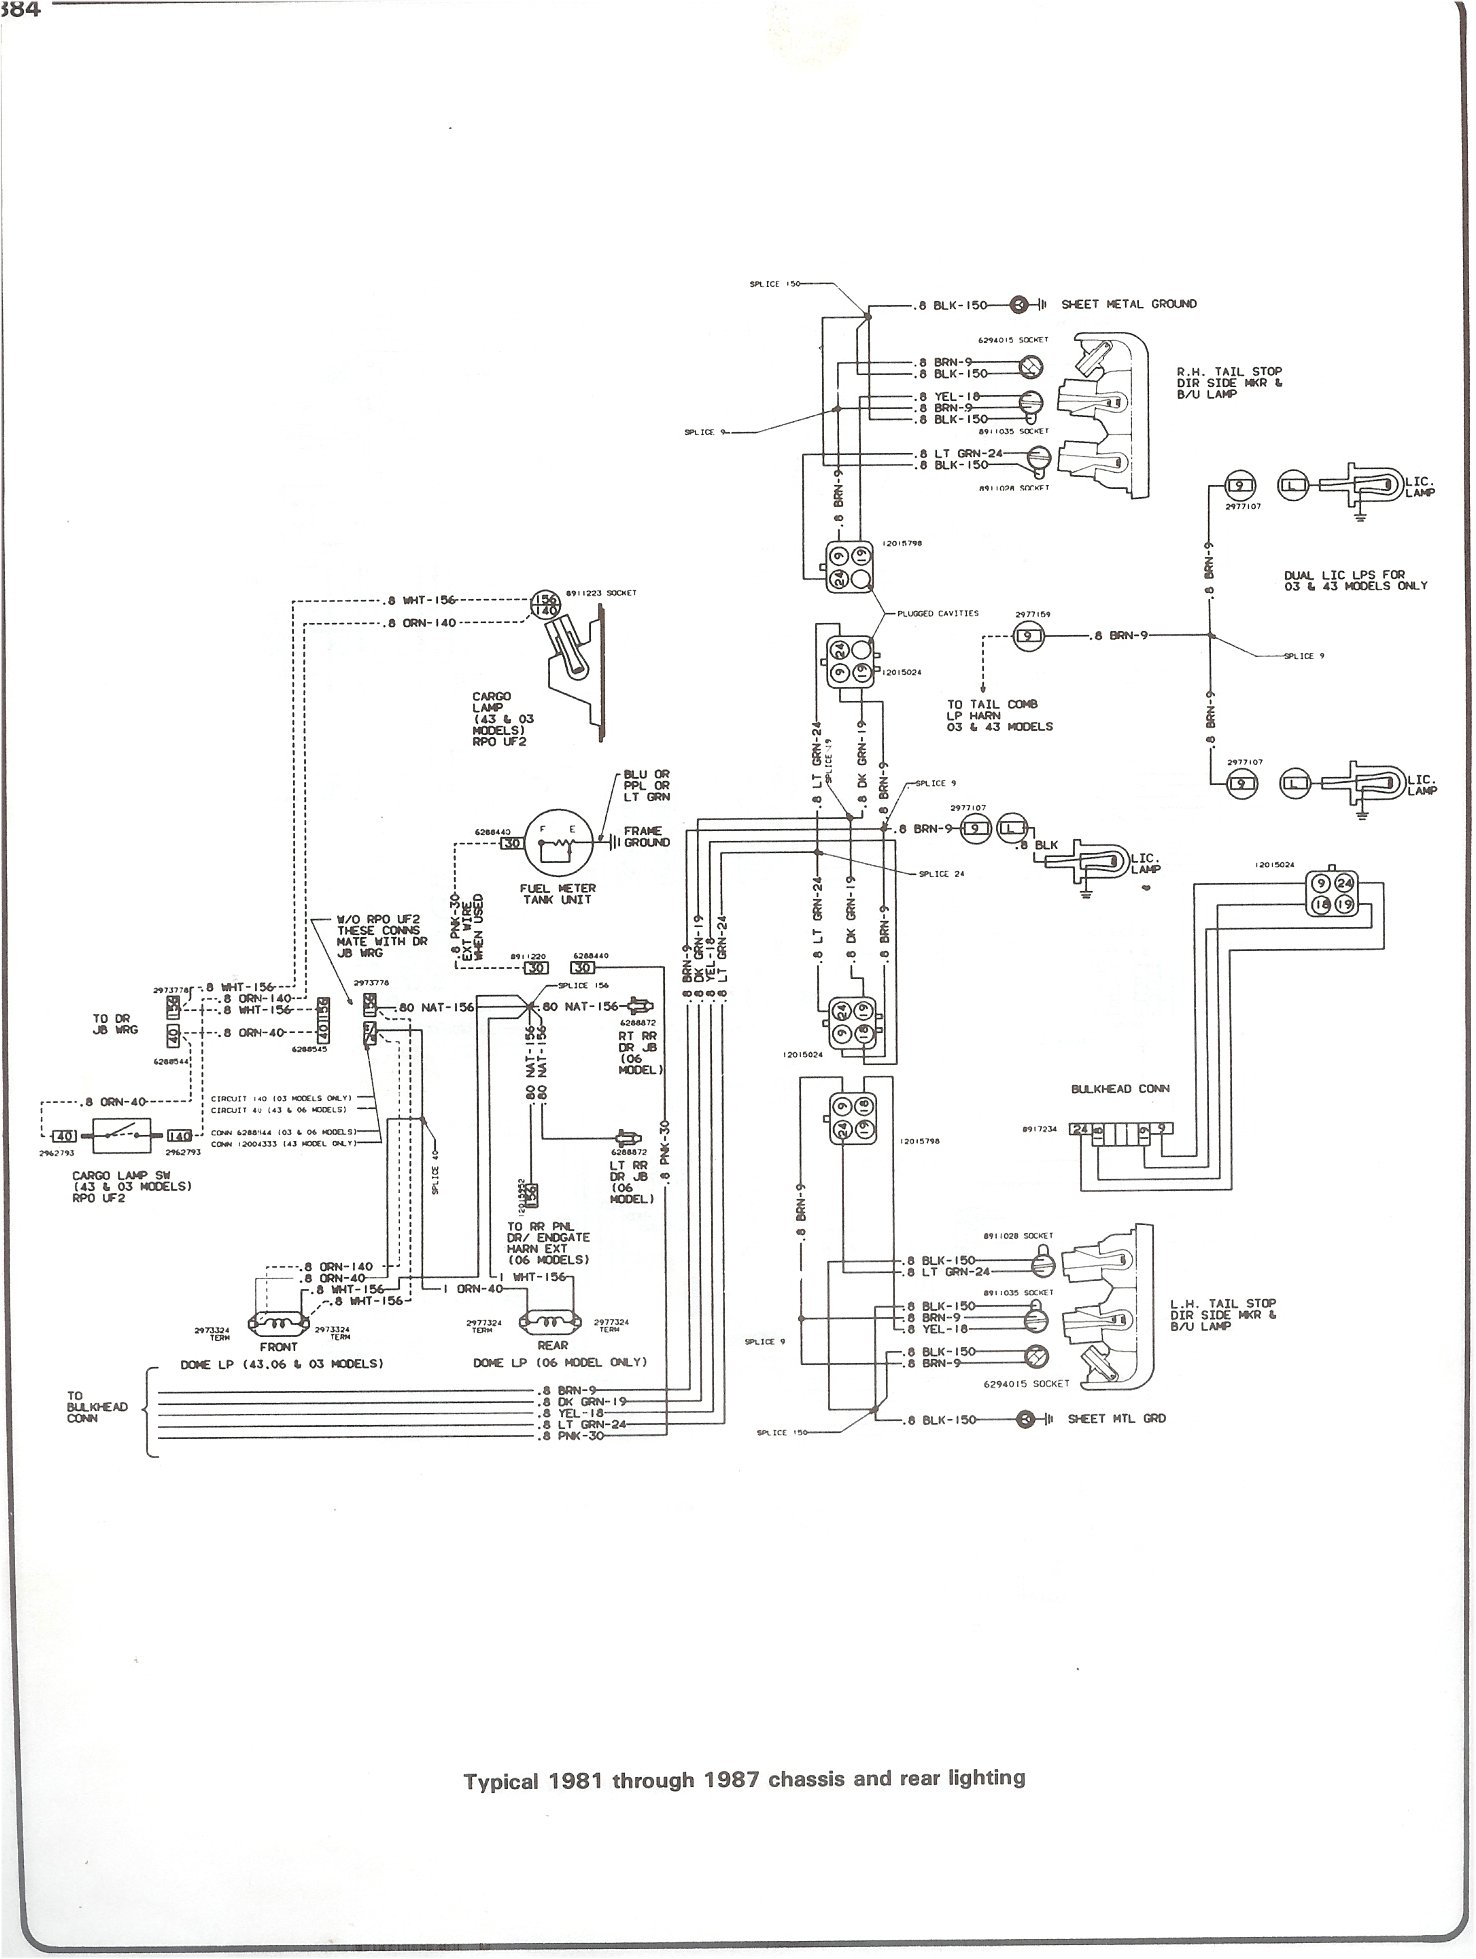 81 87_chass_rr_light complete 73 87 wiring diagrams chevy wiring schematics at bayanpartner.co